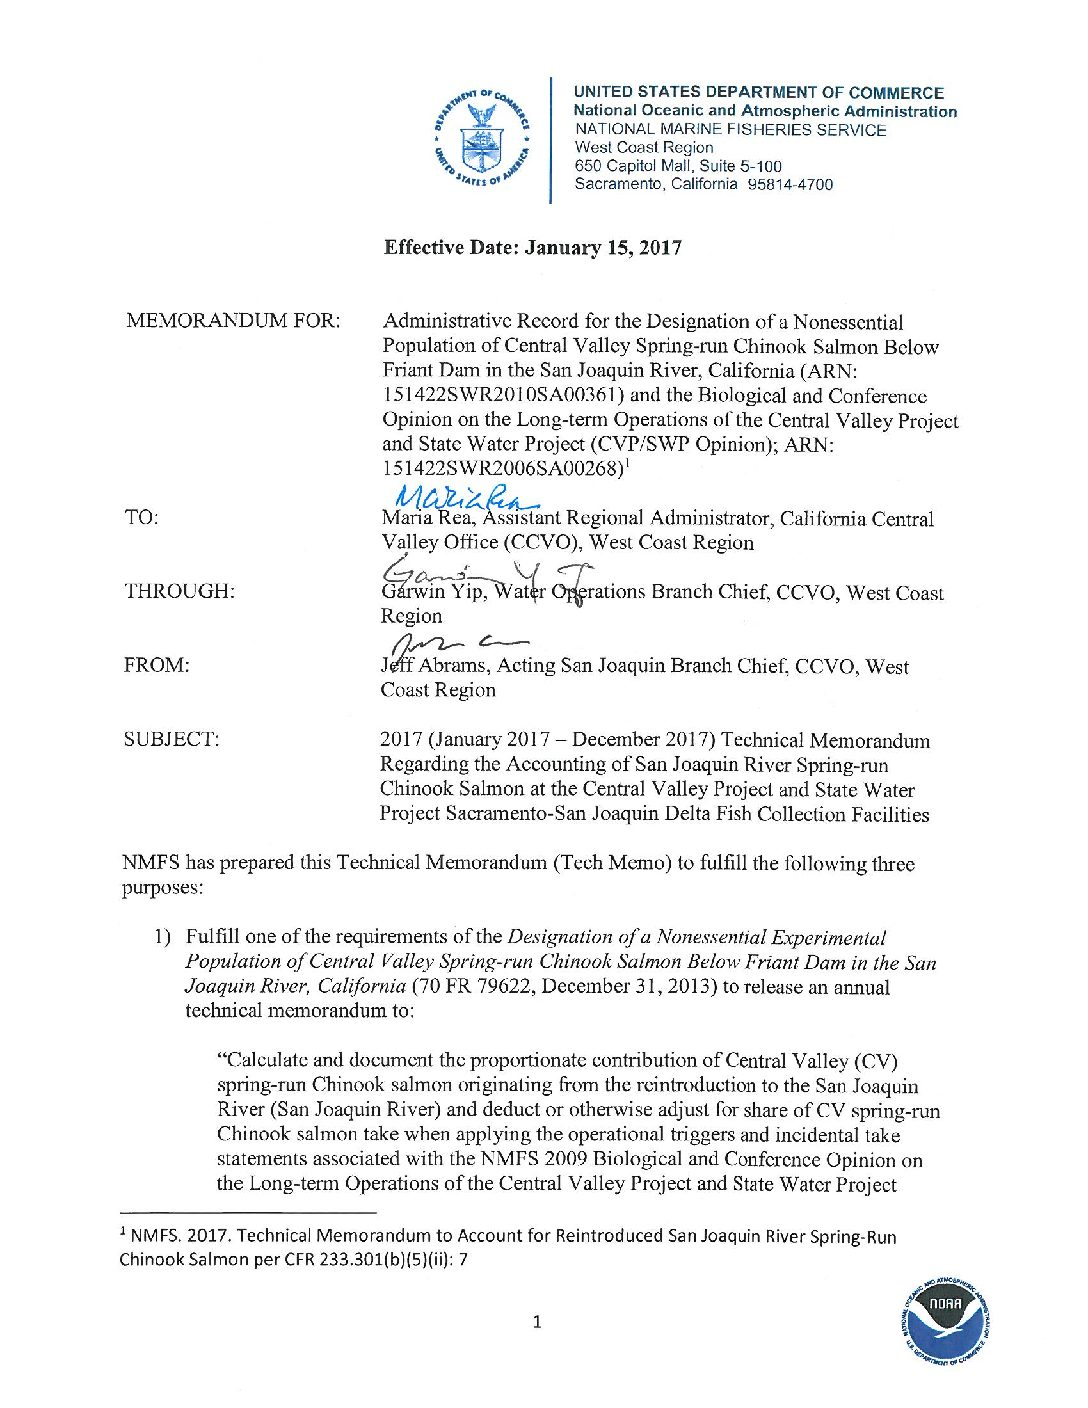 2017 Technical Memorandum Regarding the Accounting of San Joaquin River Spring-run Chinook Salmon at the Central Valley Project and State Water Project Sacramento-San Joaquin Delta Fish Collection Facilities